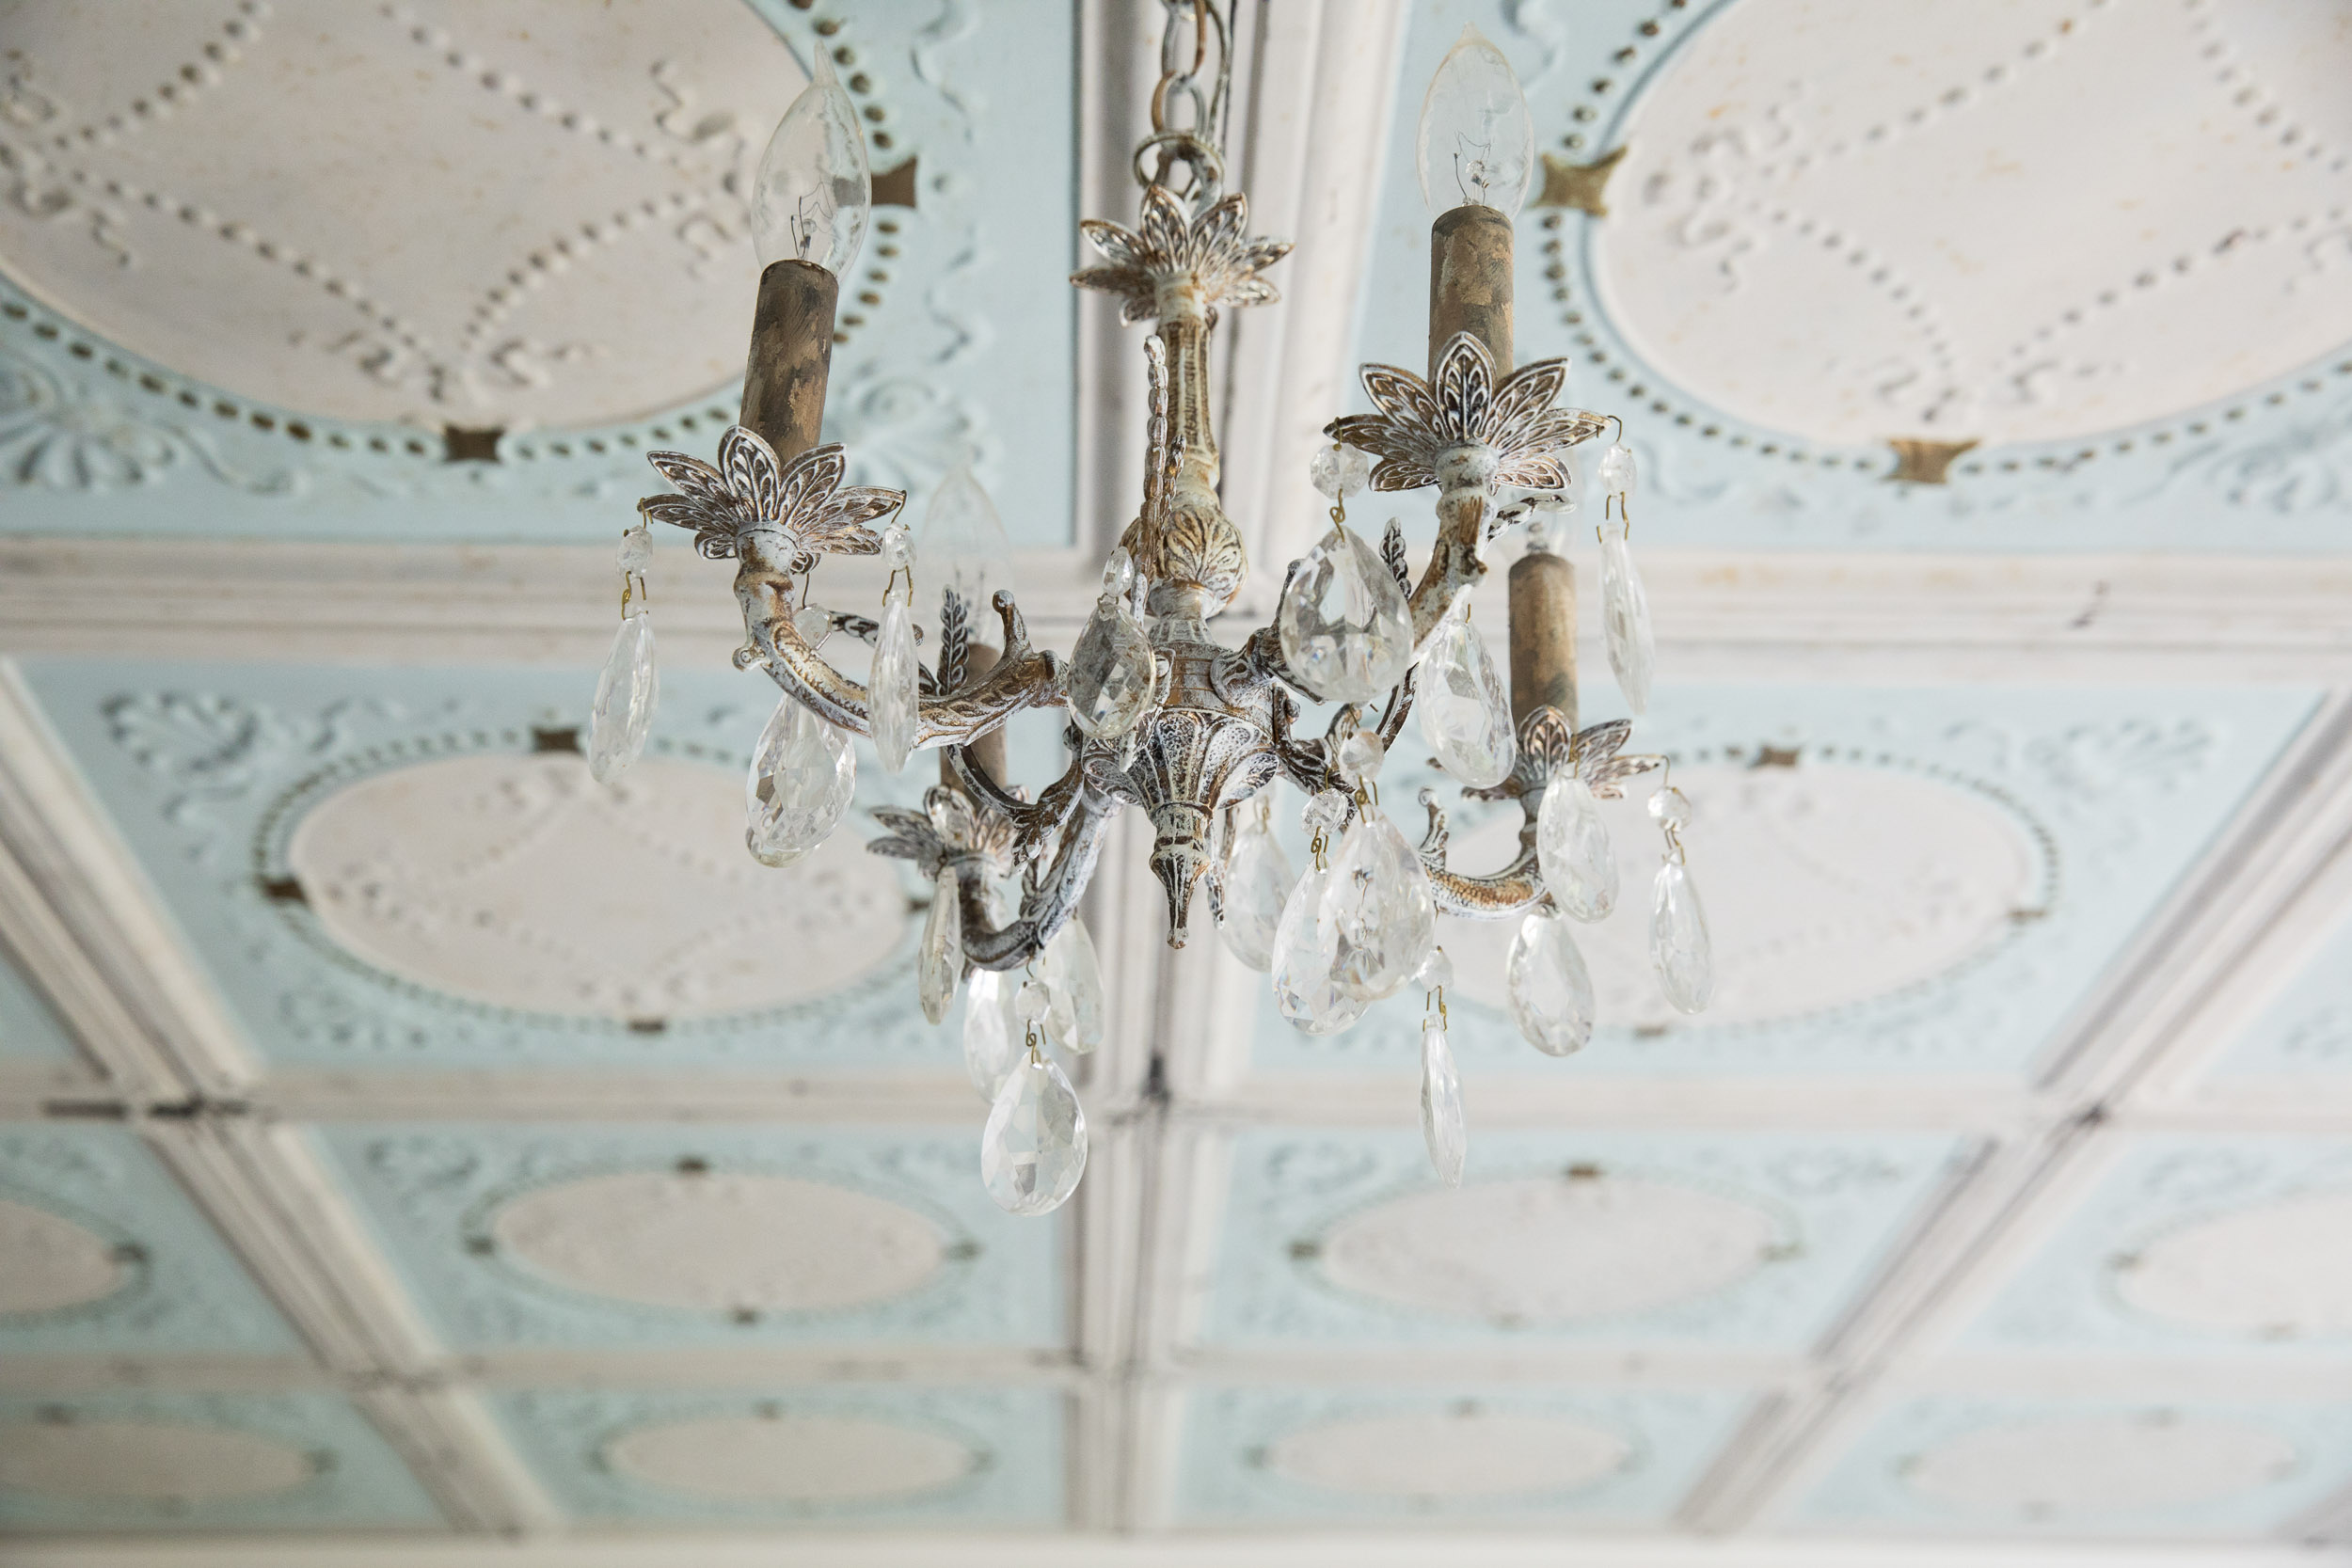 Salvaged blue and white tin ceiling tiles and an antique crystal and brass chandelier.